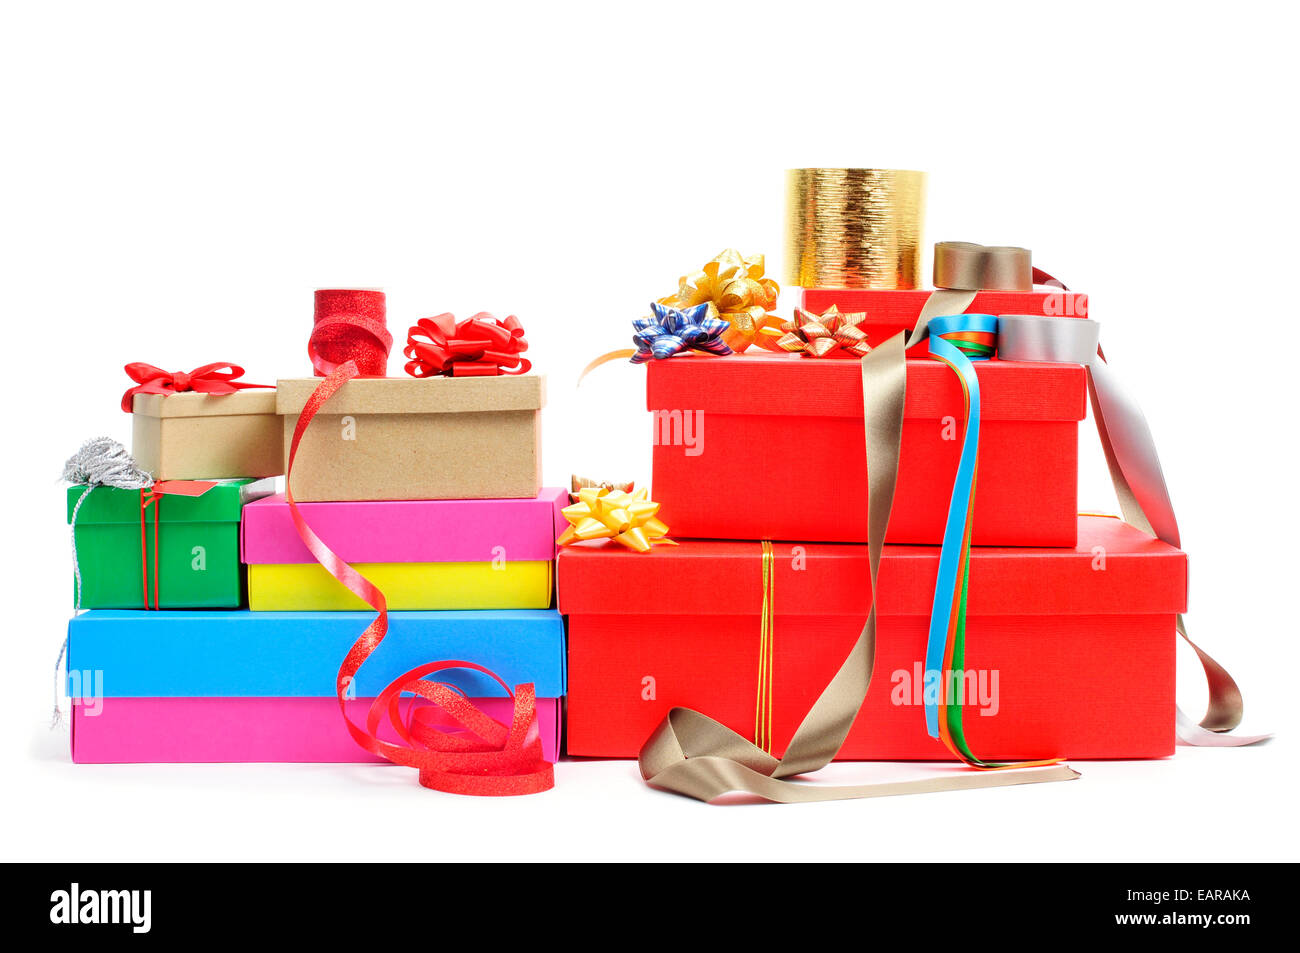 a pile of different boxes, ribbon and ribbon bows of different colors to prepare gifts, on a white background - Stock Image